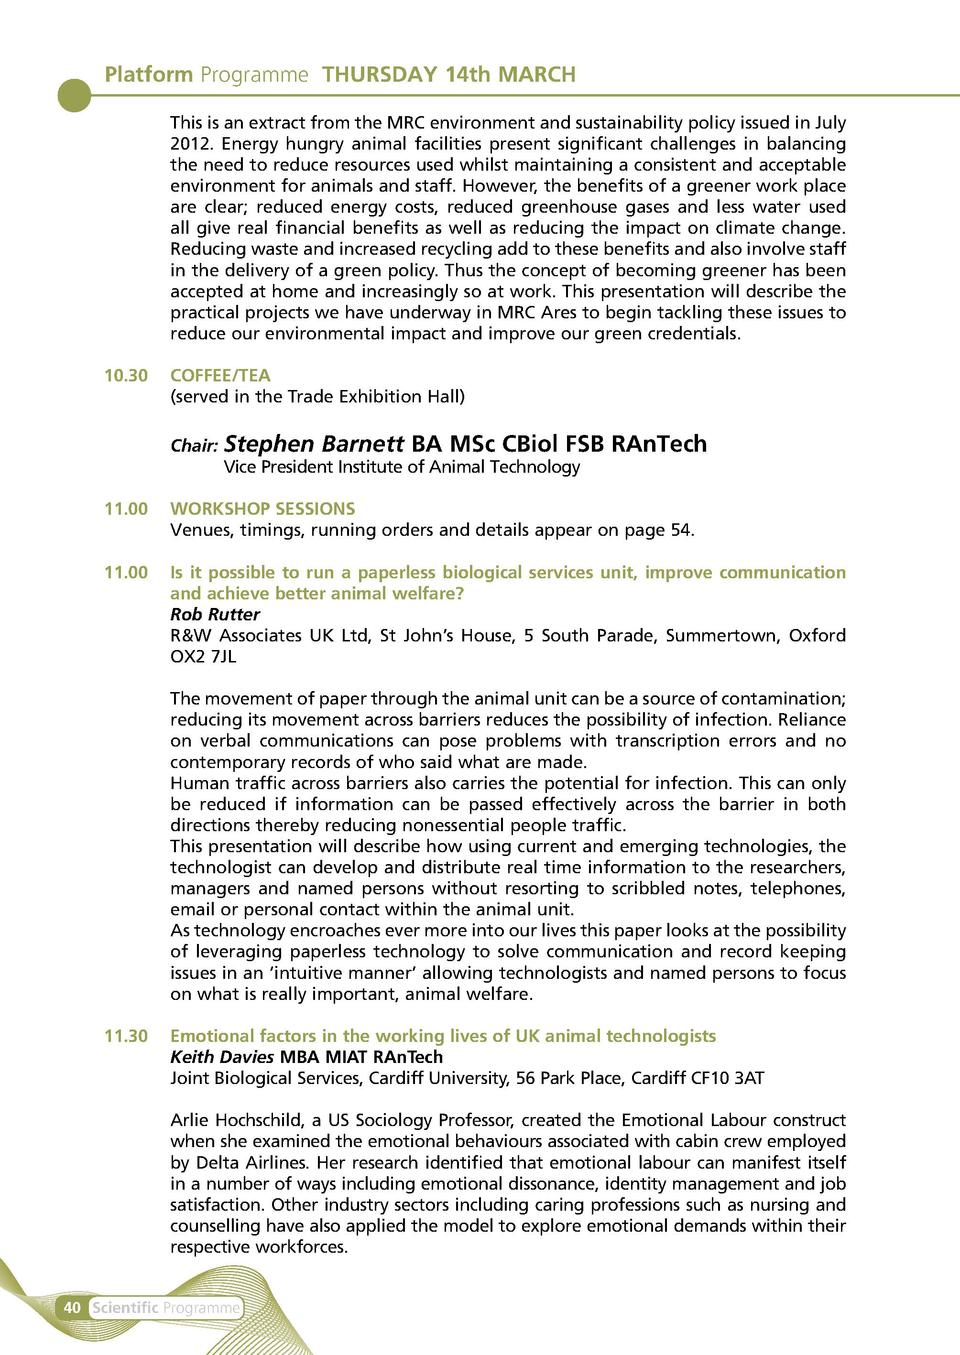 Platform Programme THURSDAY 14th MARCH    This is an extract from the MRC environment and sustainability policy issued in ...